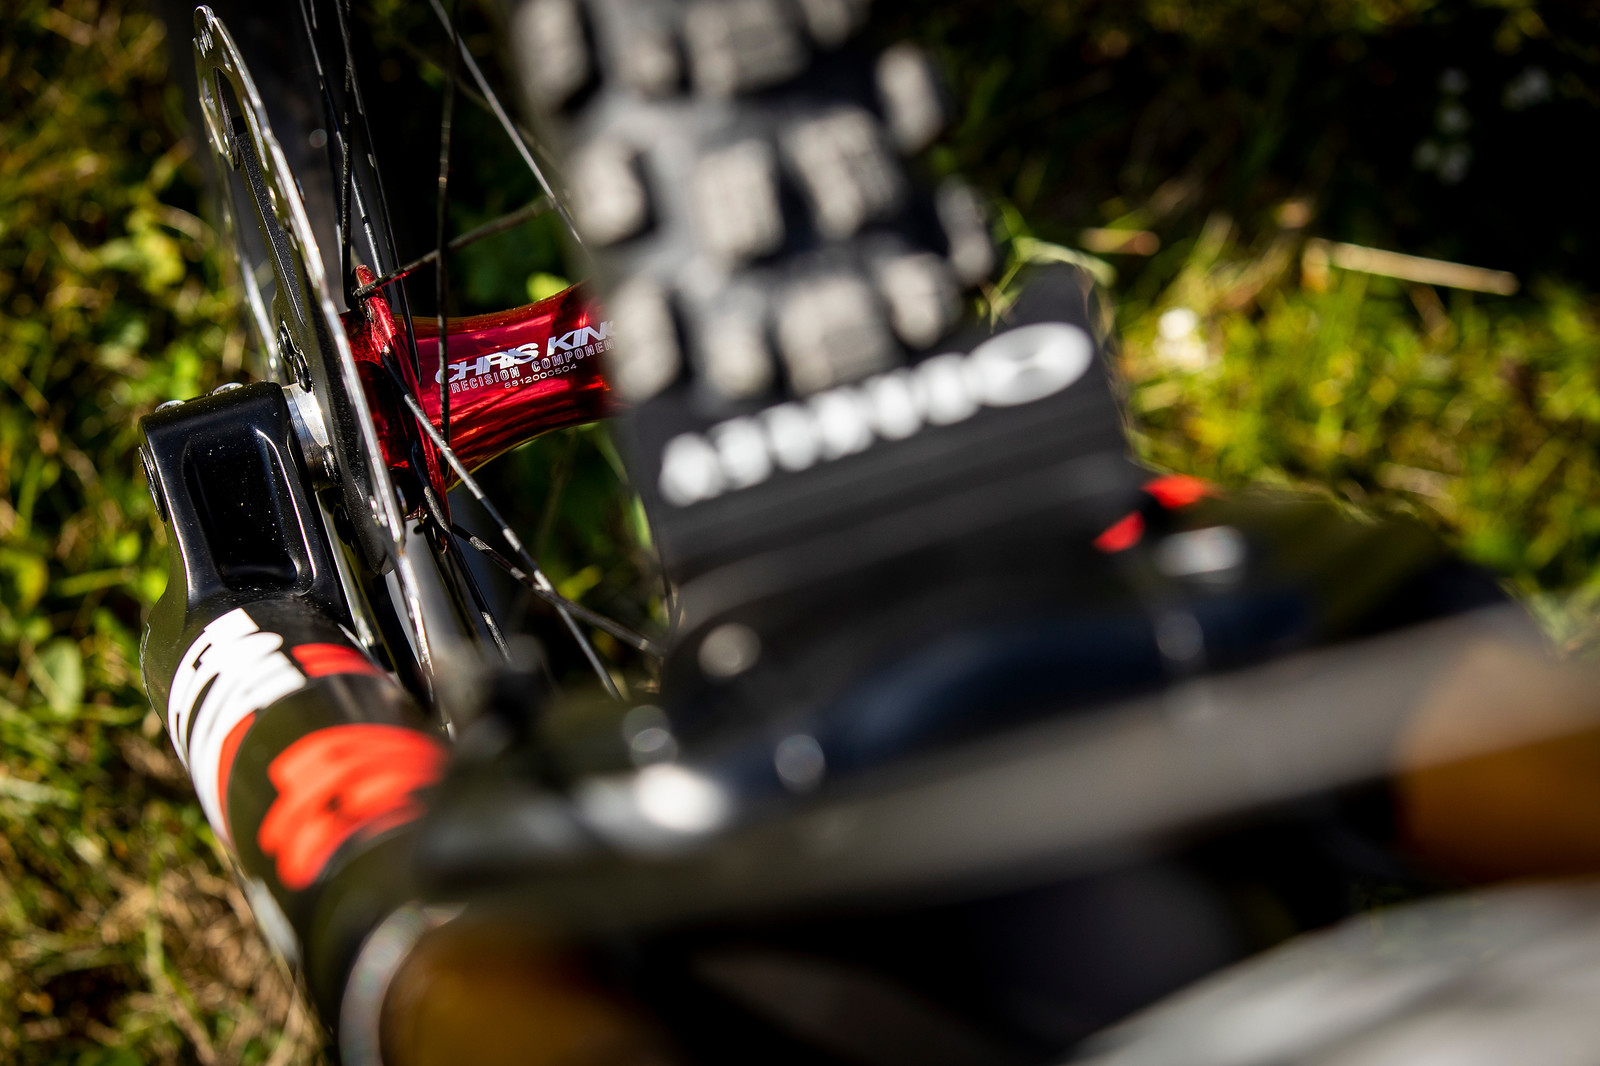 Arty Hub Shot - WORLD CHAMPS BIKE - Greg Minnaar's Santa Cruz V10 - Mountain Biking Pictures - Vital MTB